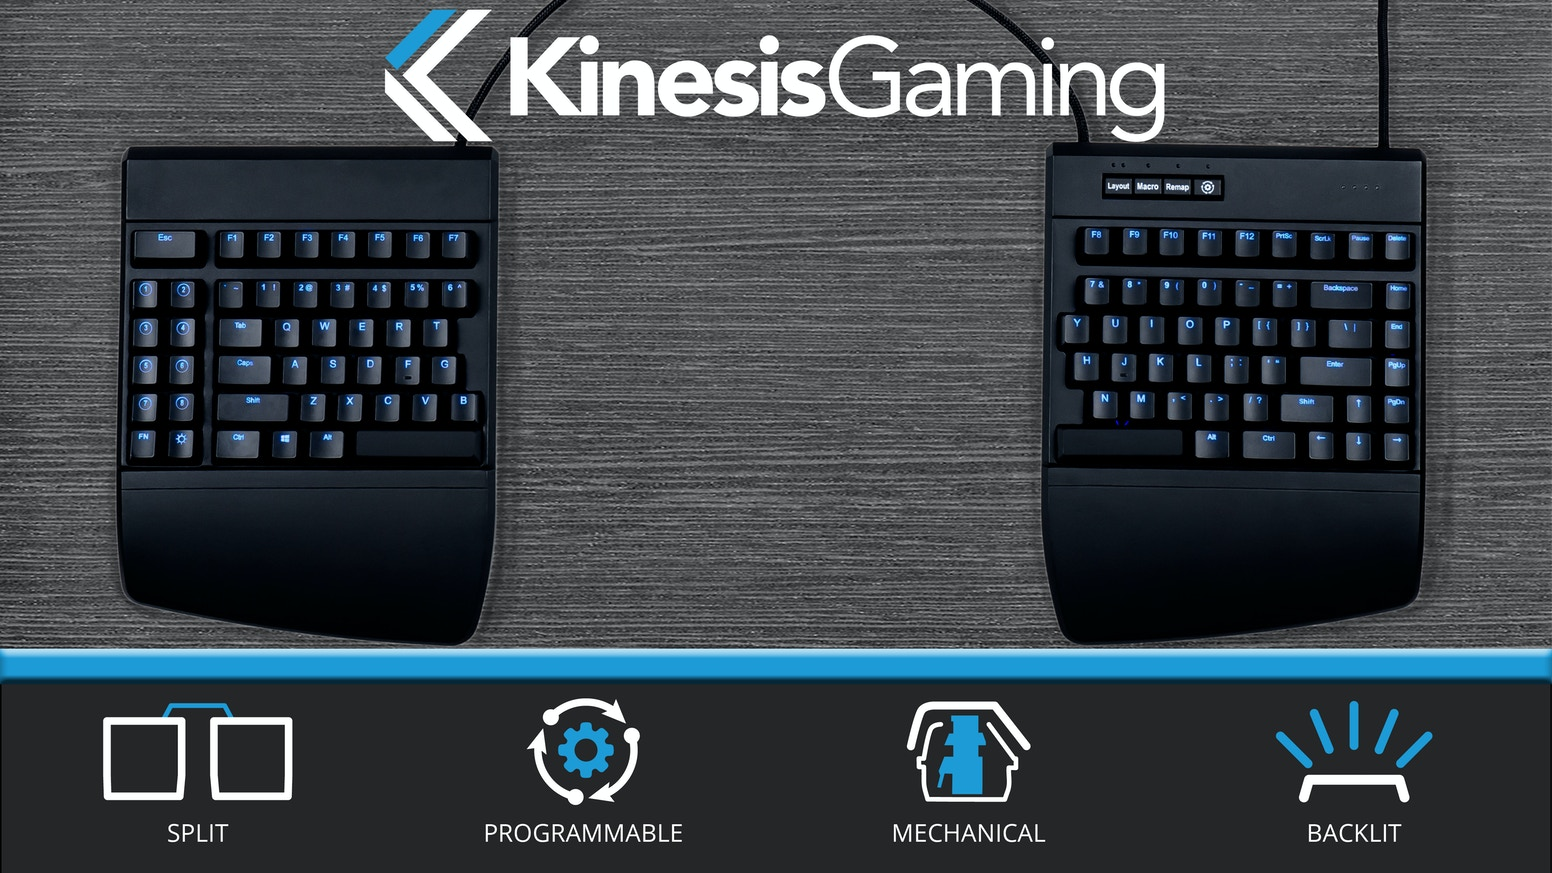 The first split keyboard designed specifically for gamers. Onboard programmable, Cherry mechanical, LED backlighting and much more. ORDER NOW at KinesisGaming.com. MSRP: $219.00 USD